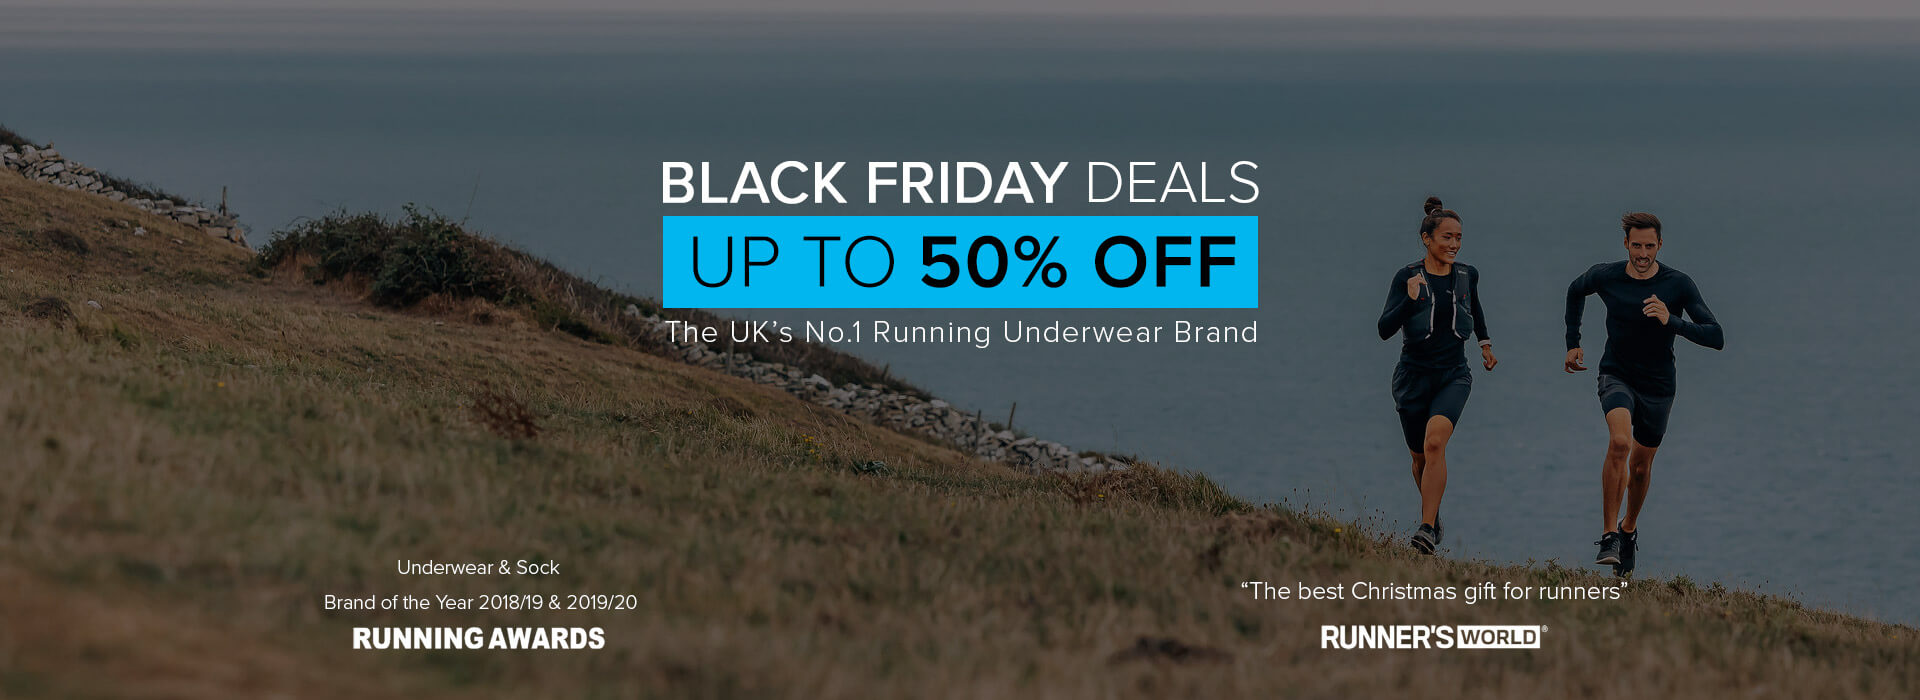 Black Friday Deals - up to 50% off